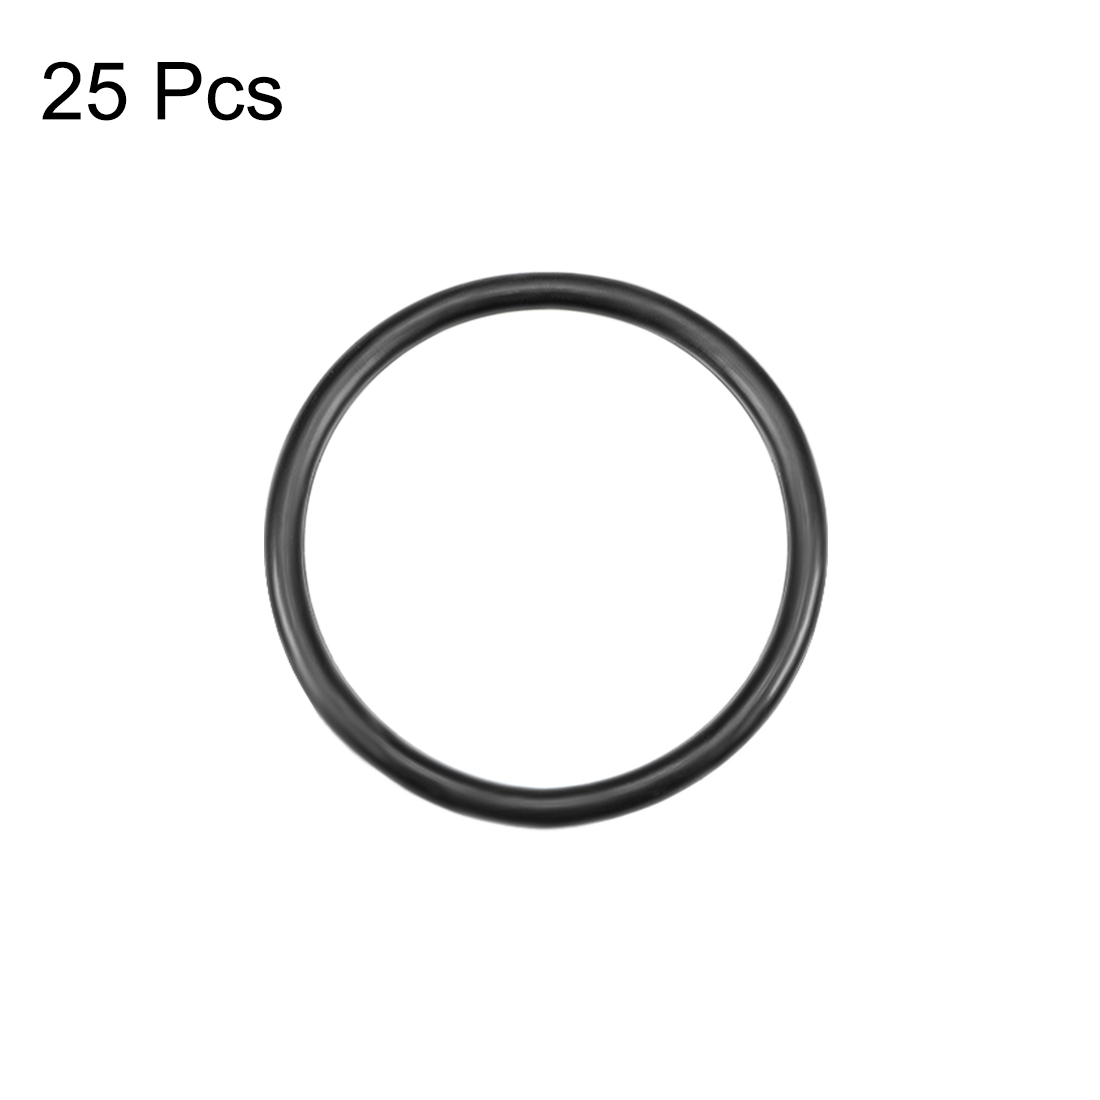 28mm OD Round Seal Gasket uxcell O-Rings Nitrile Rubber Pack of 10 18mm Inner Diameter 5mm Width